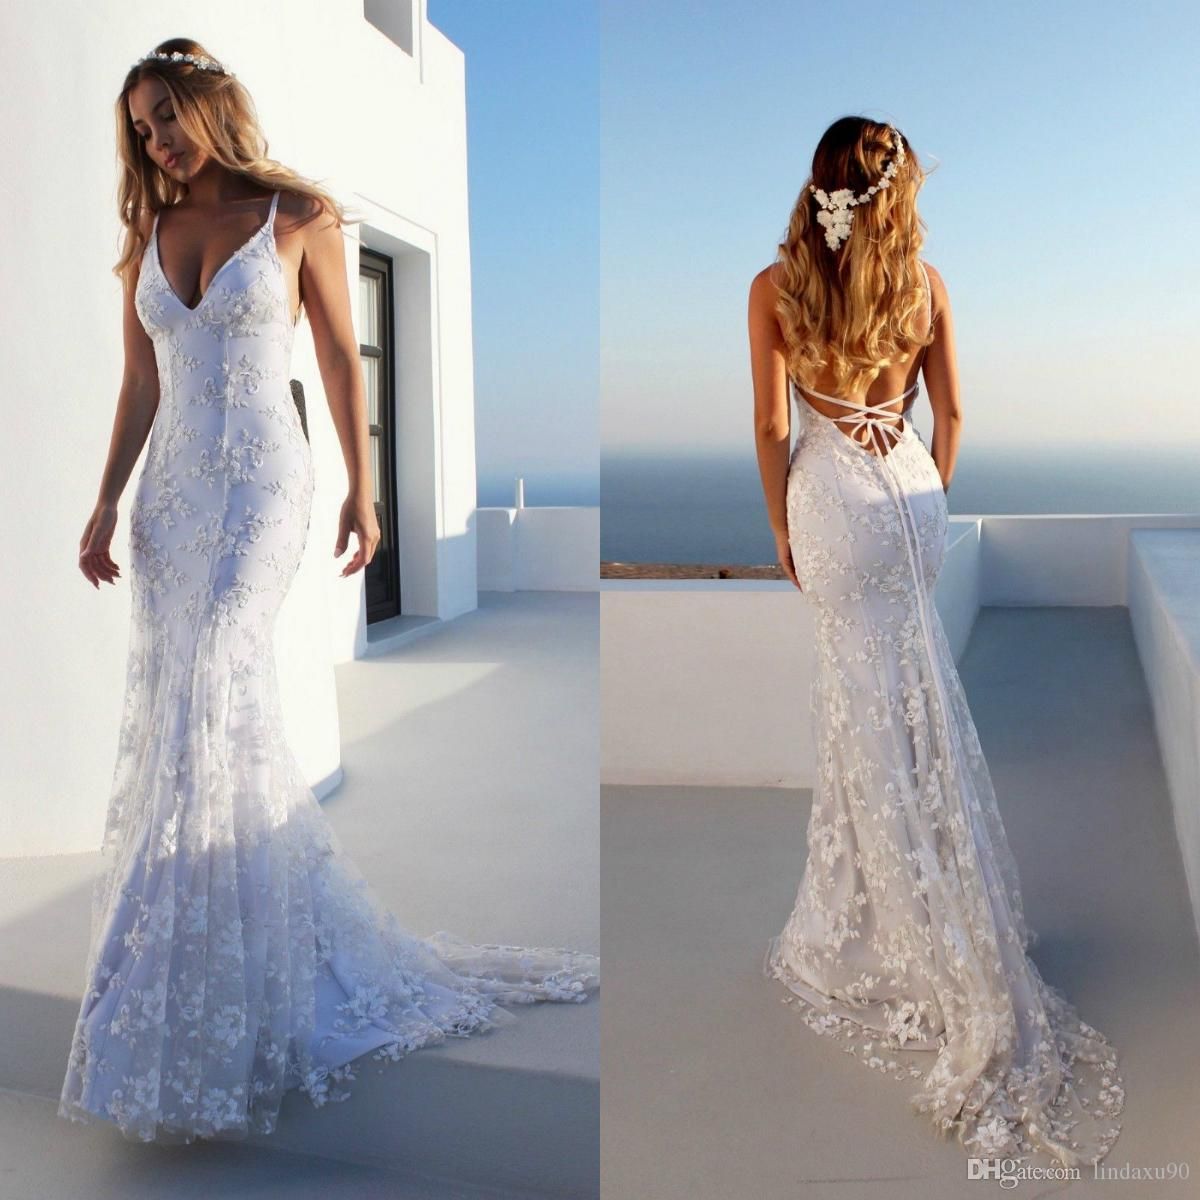 Beach Wedding Dress Guest For Sale Raveitsafe